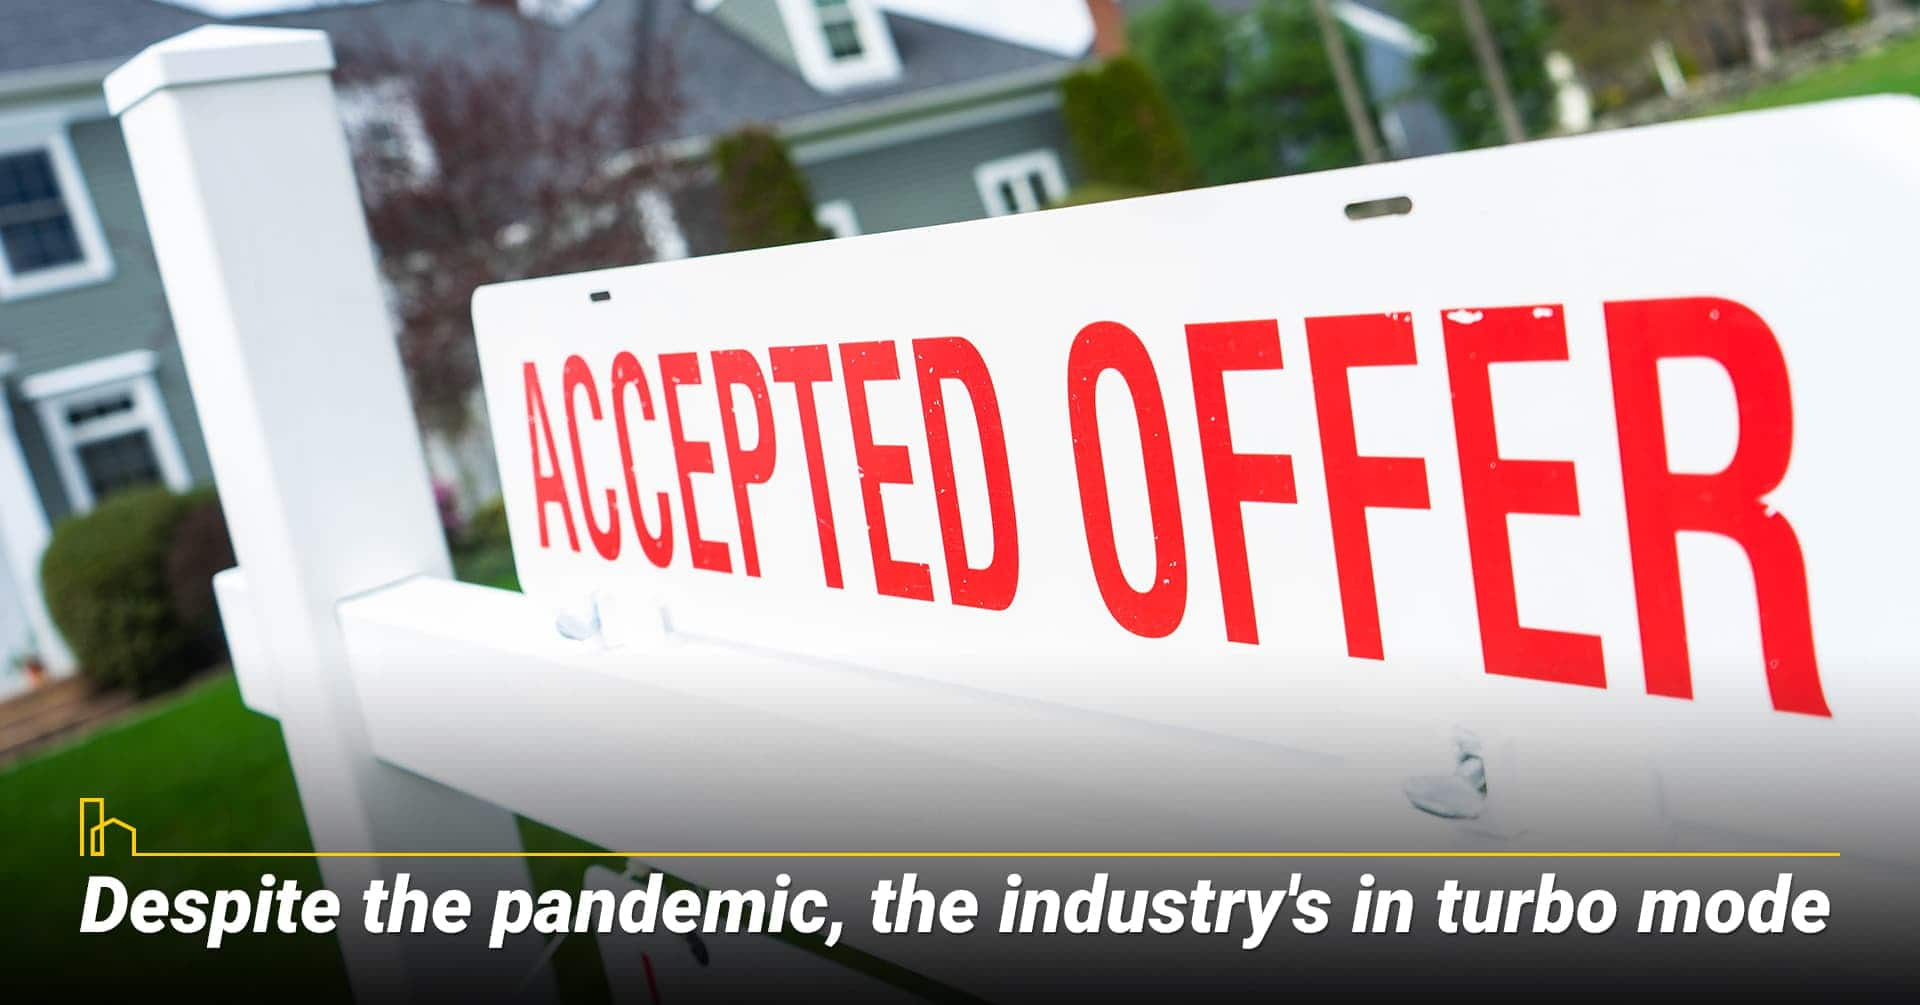 Despite the pandemic, the industry's in turbo mode, strong housing market